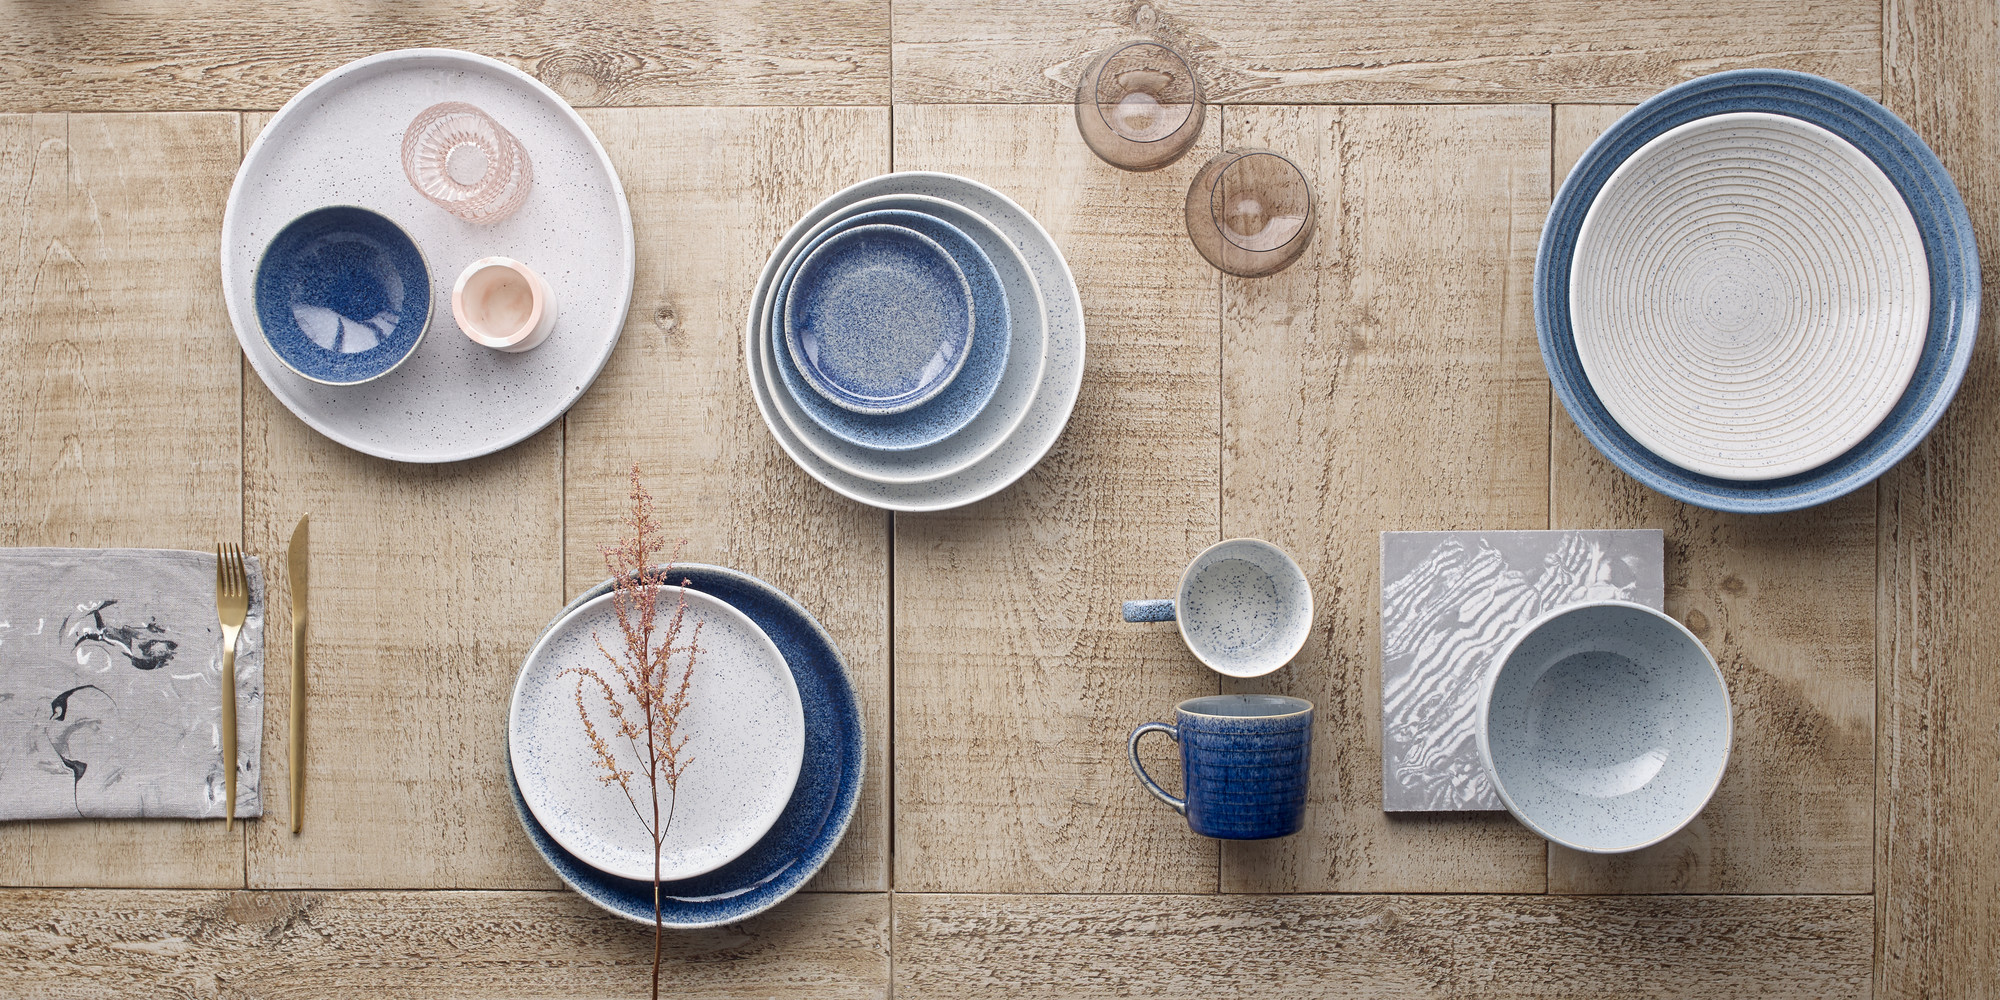 Introducing Studio Blue from Denby